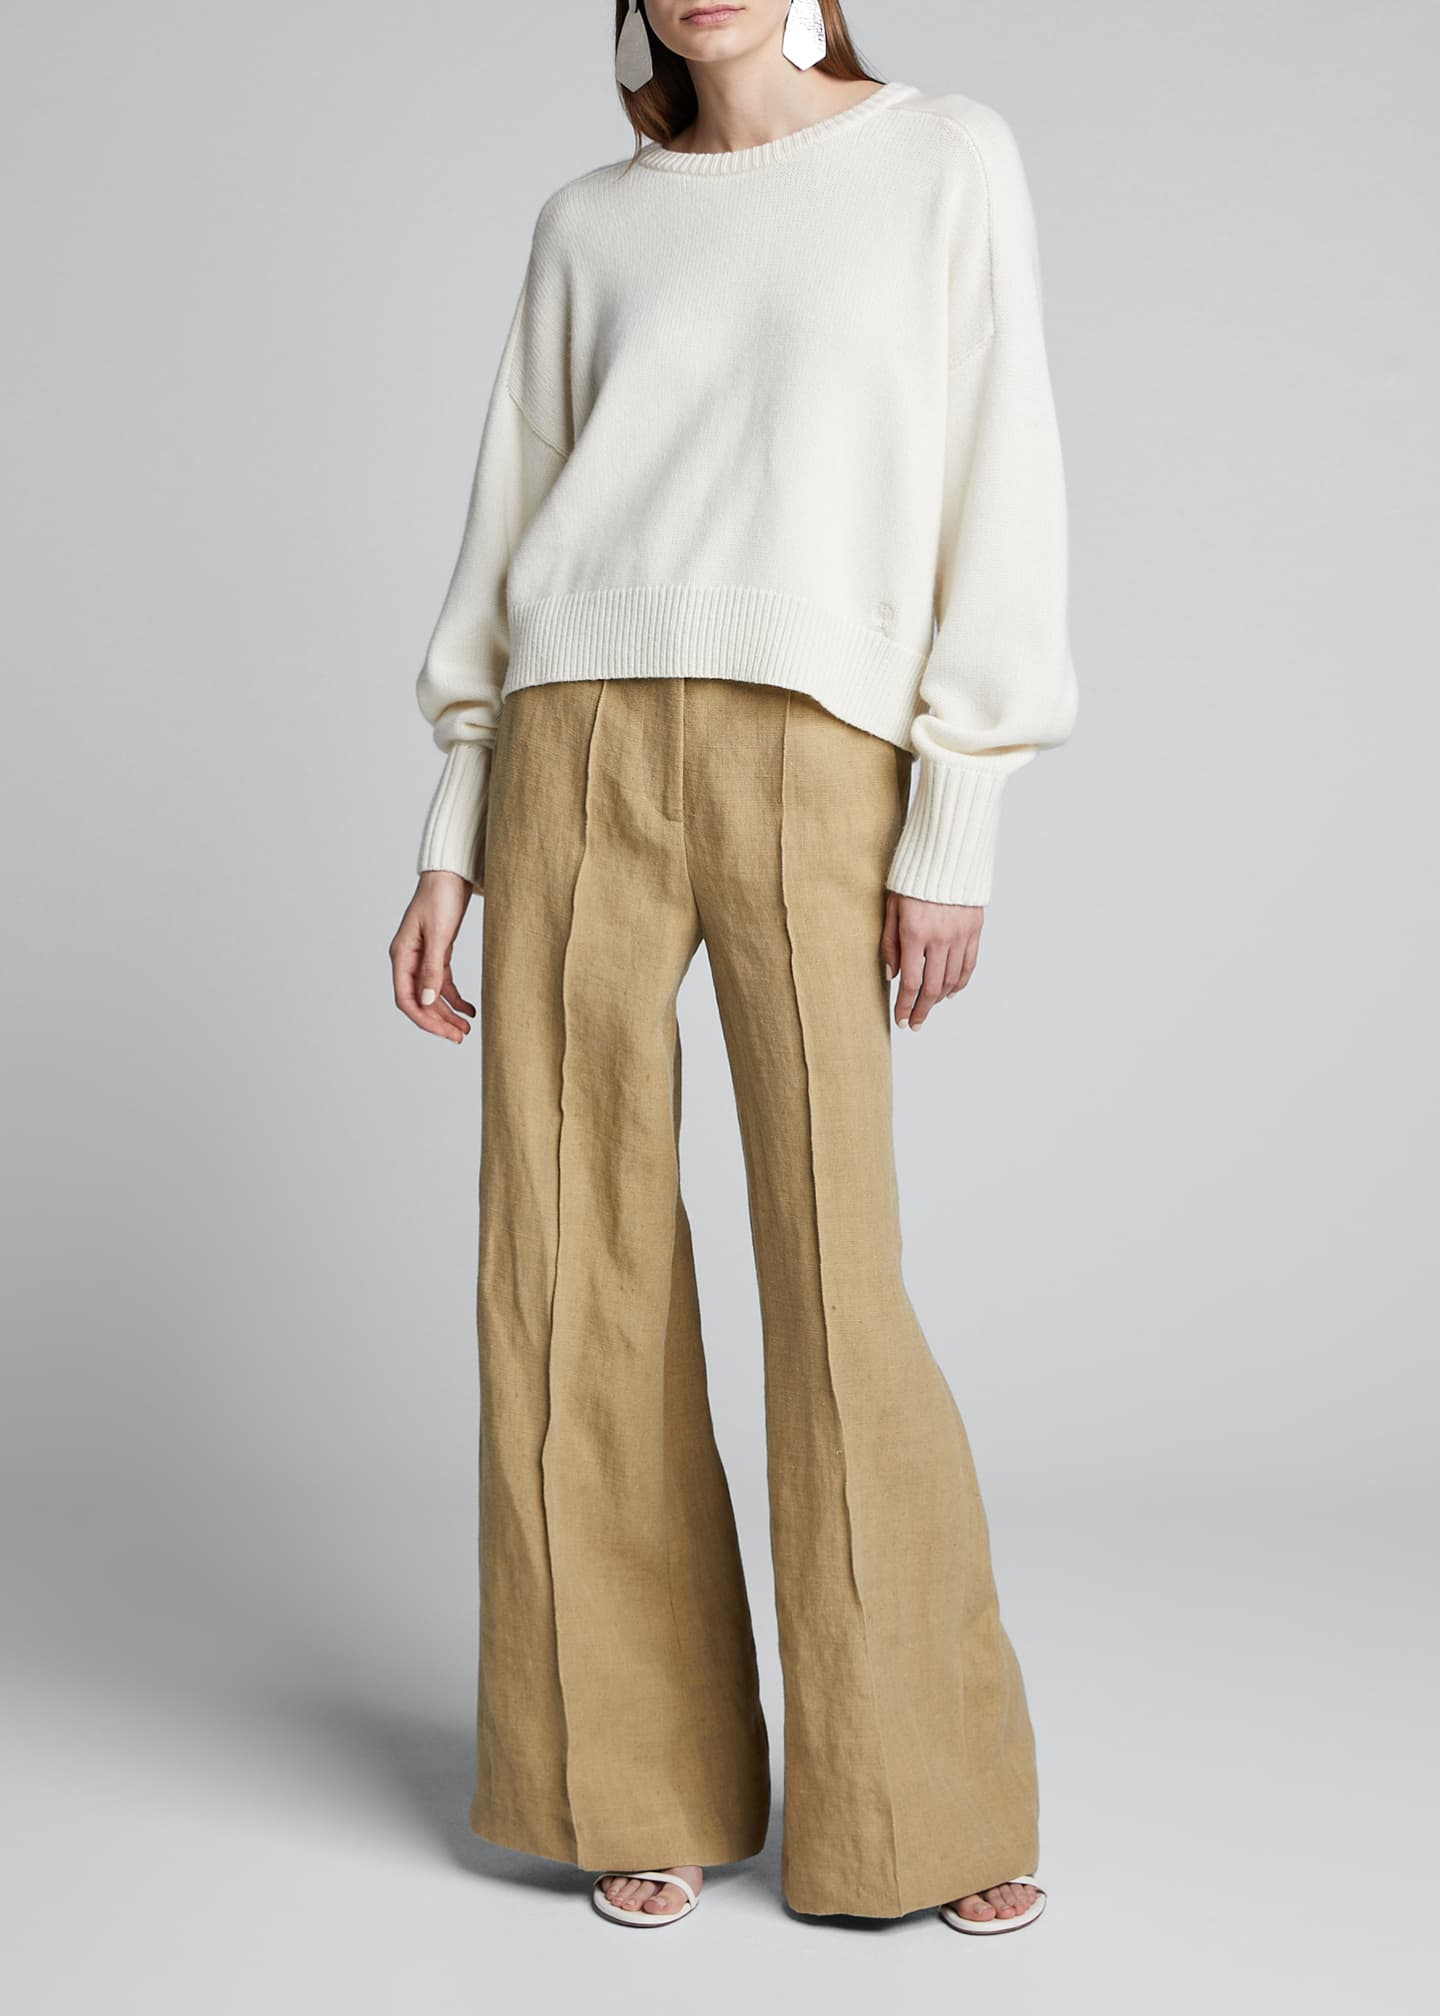 Loulou Studio Wool-Cashmere Classic Slouch-Sleeve Sweater